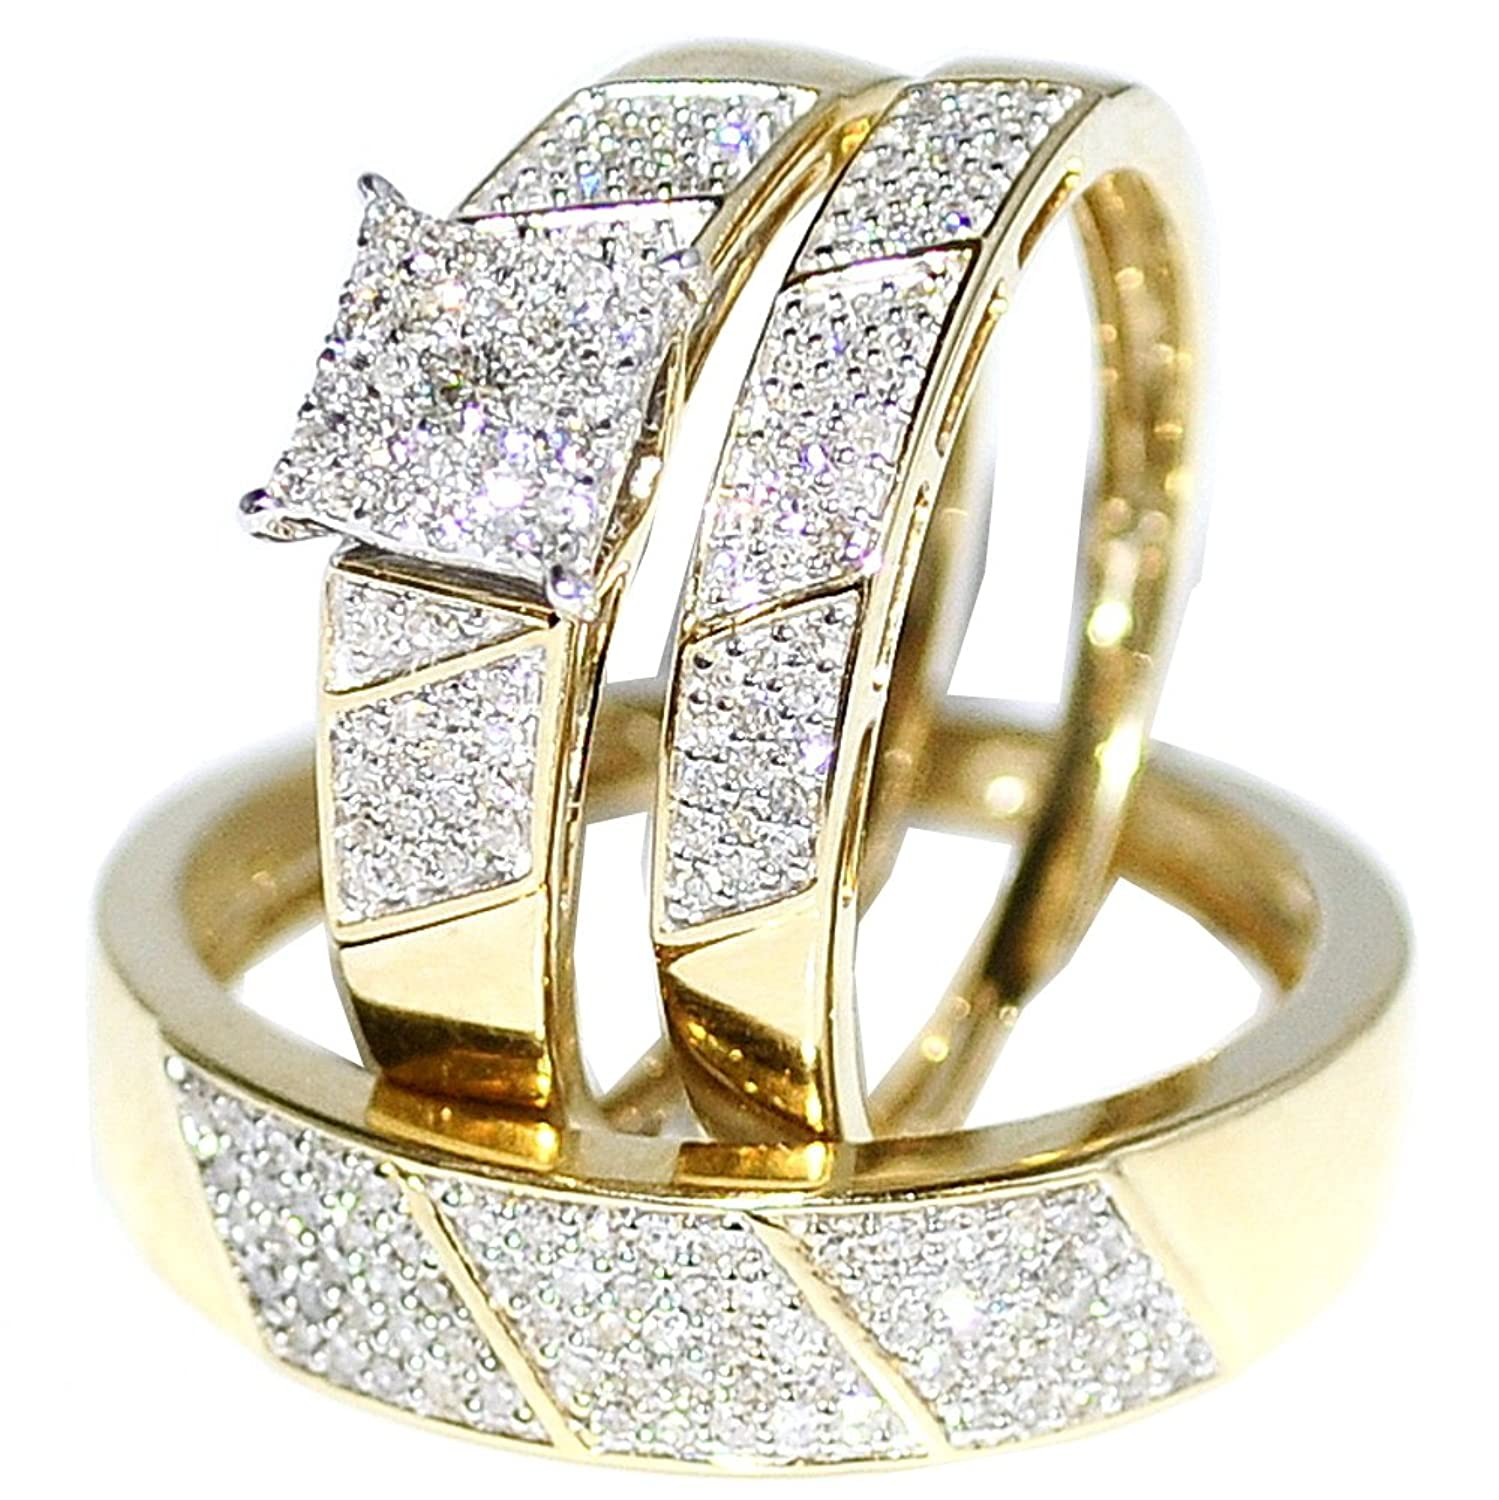 rings of wedding g white plain artcarved bands mens engagement designer picture gold product